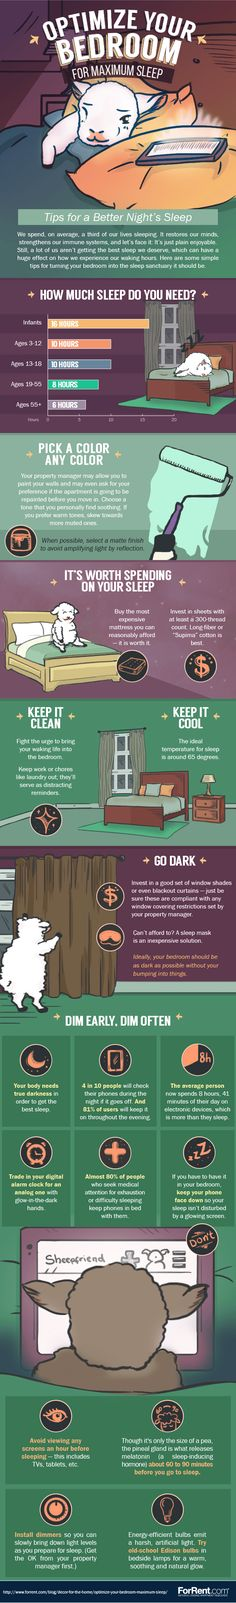 Optimize Your Bedroom For Maximum Sleep  [by ForRent.com -- via #tipsographic]. More at tipsographic.com